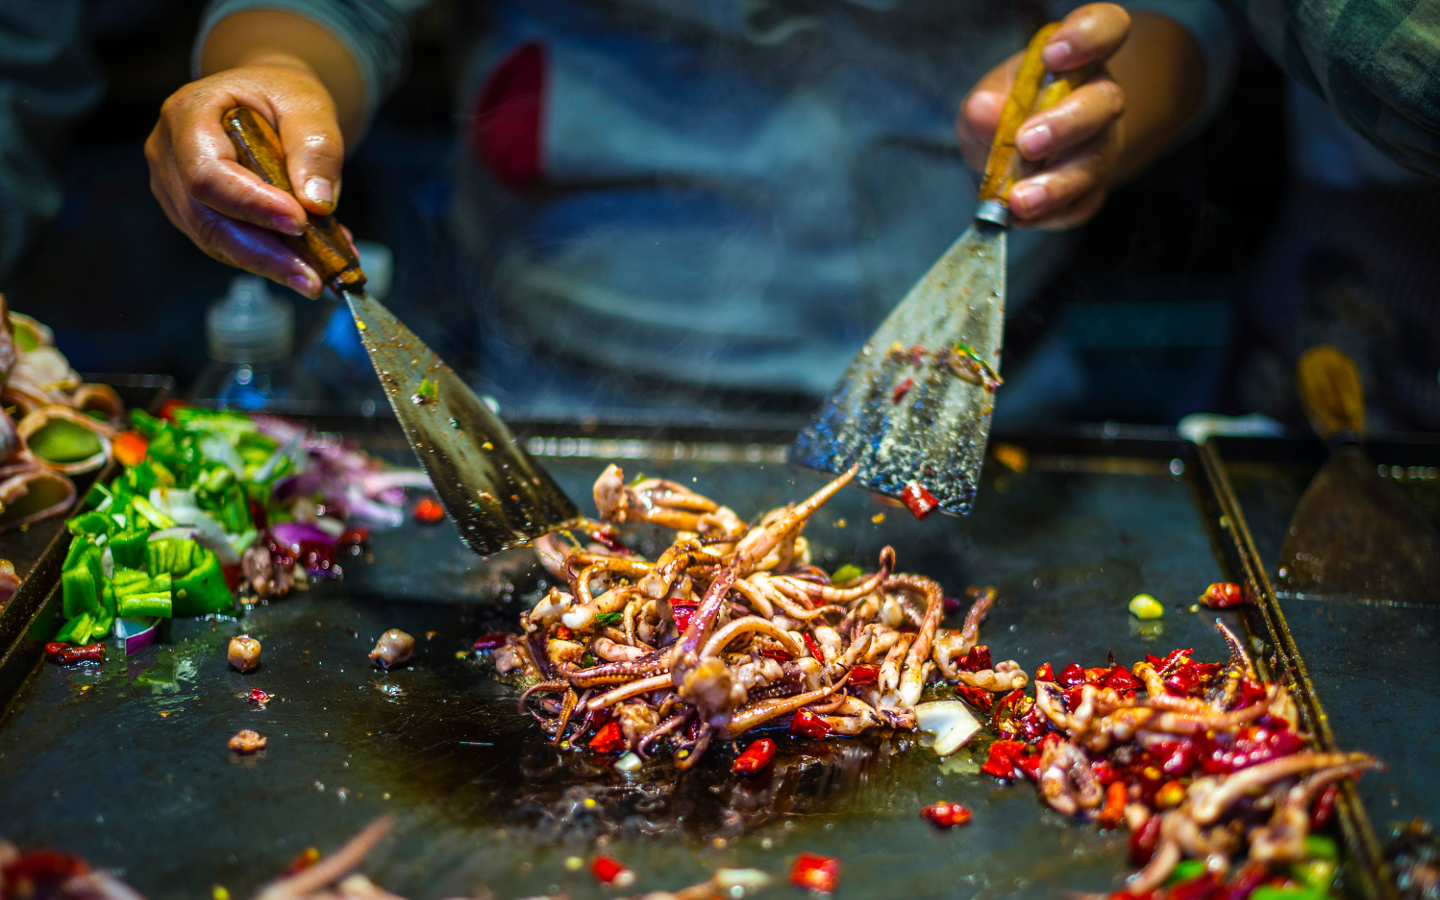 Top 5 Tips For Finding Great Street Food